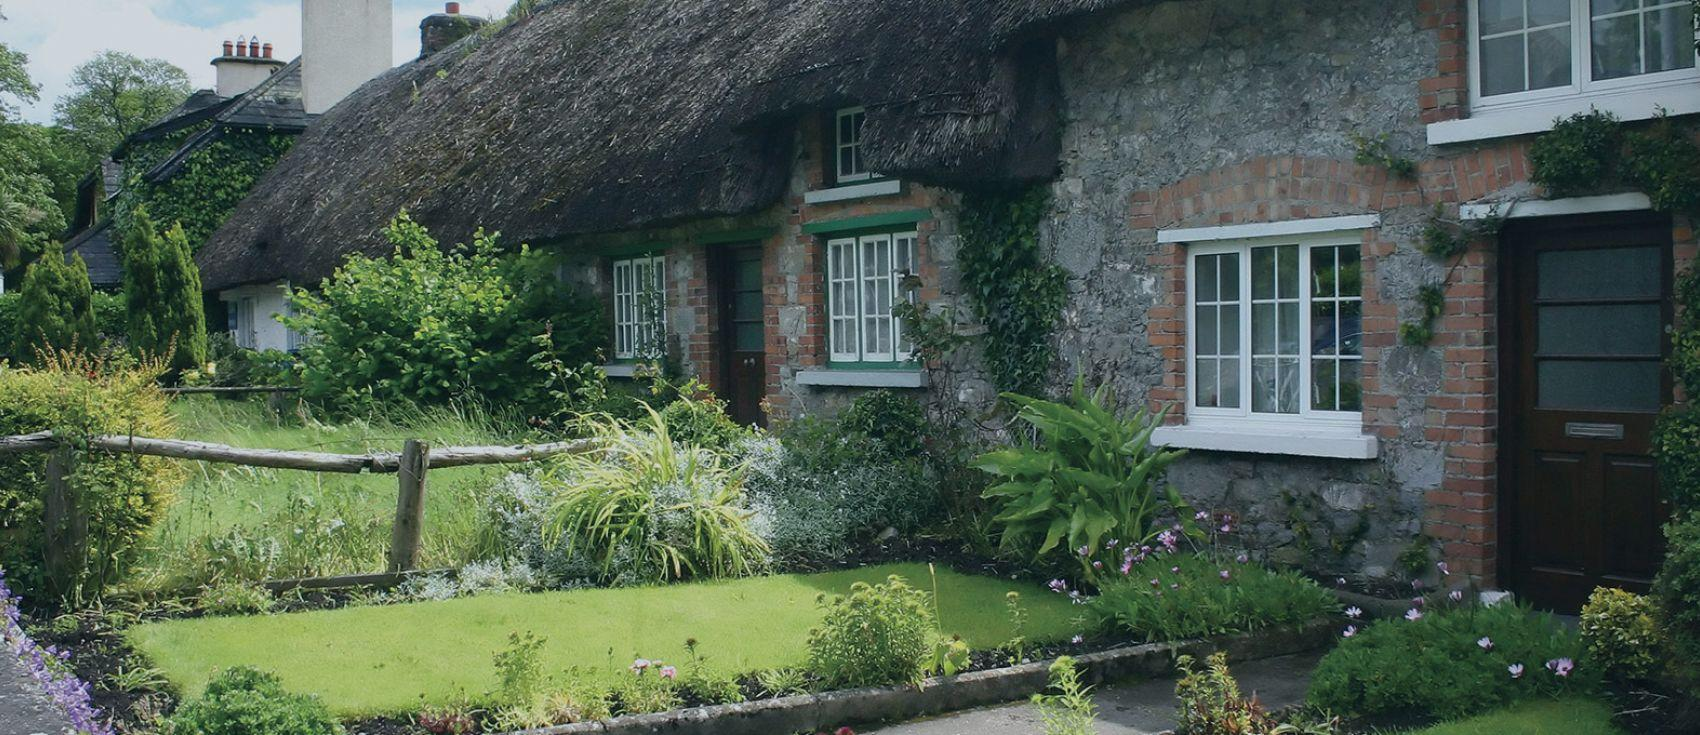 Adare, Co. Limerick